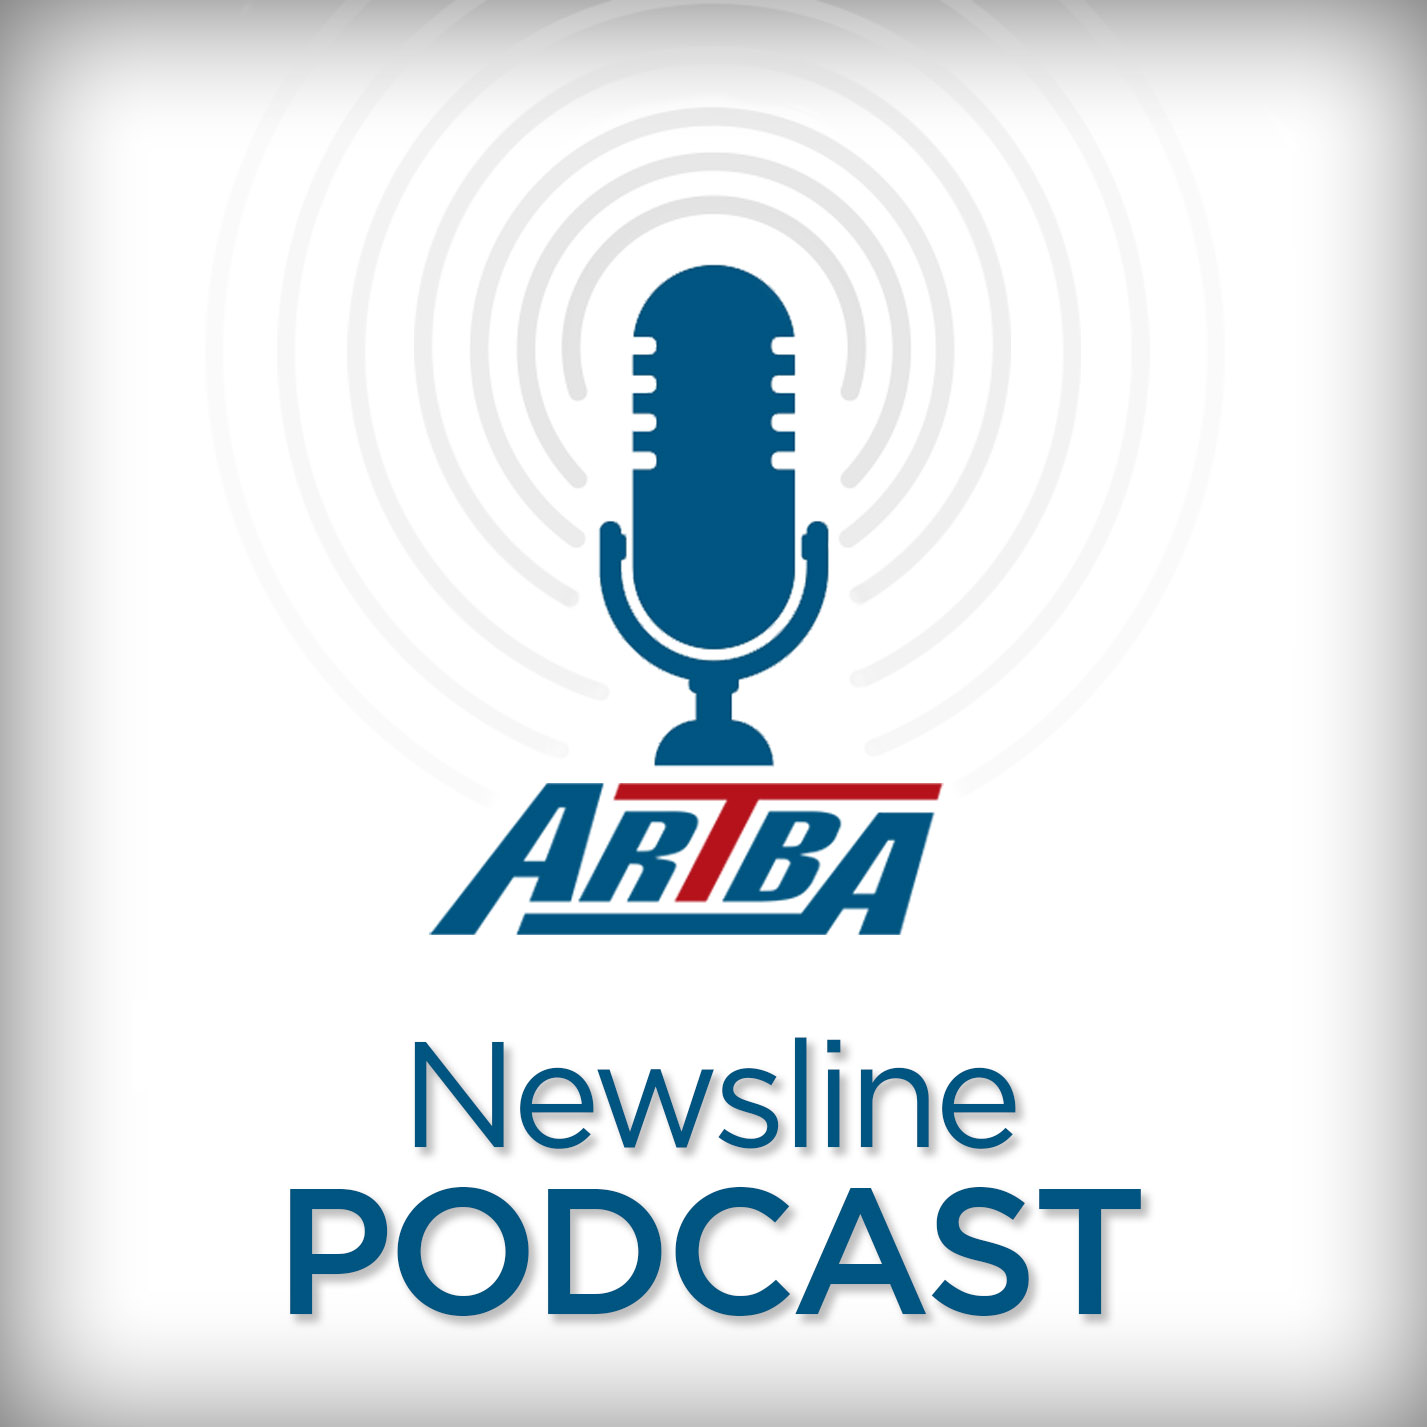 ARTBA Newsline Podcast